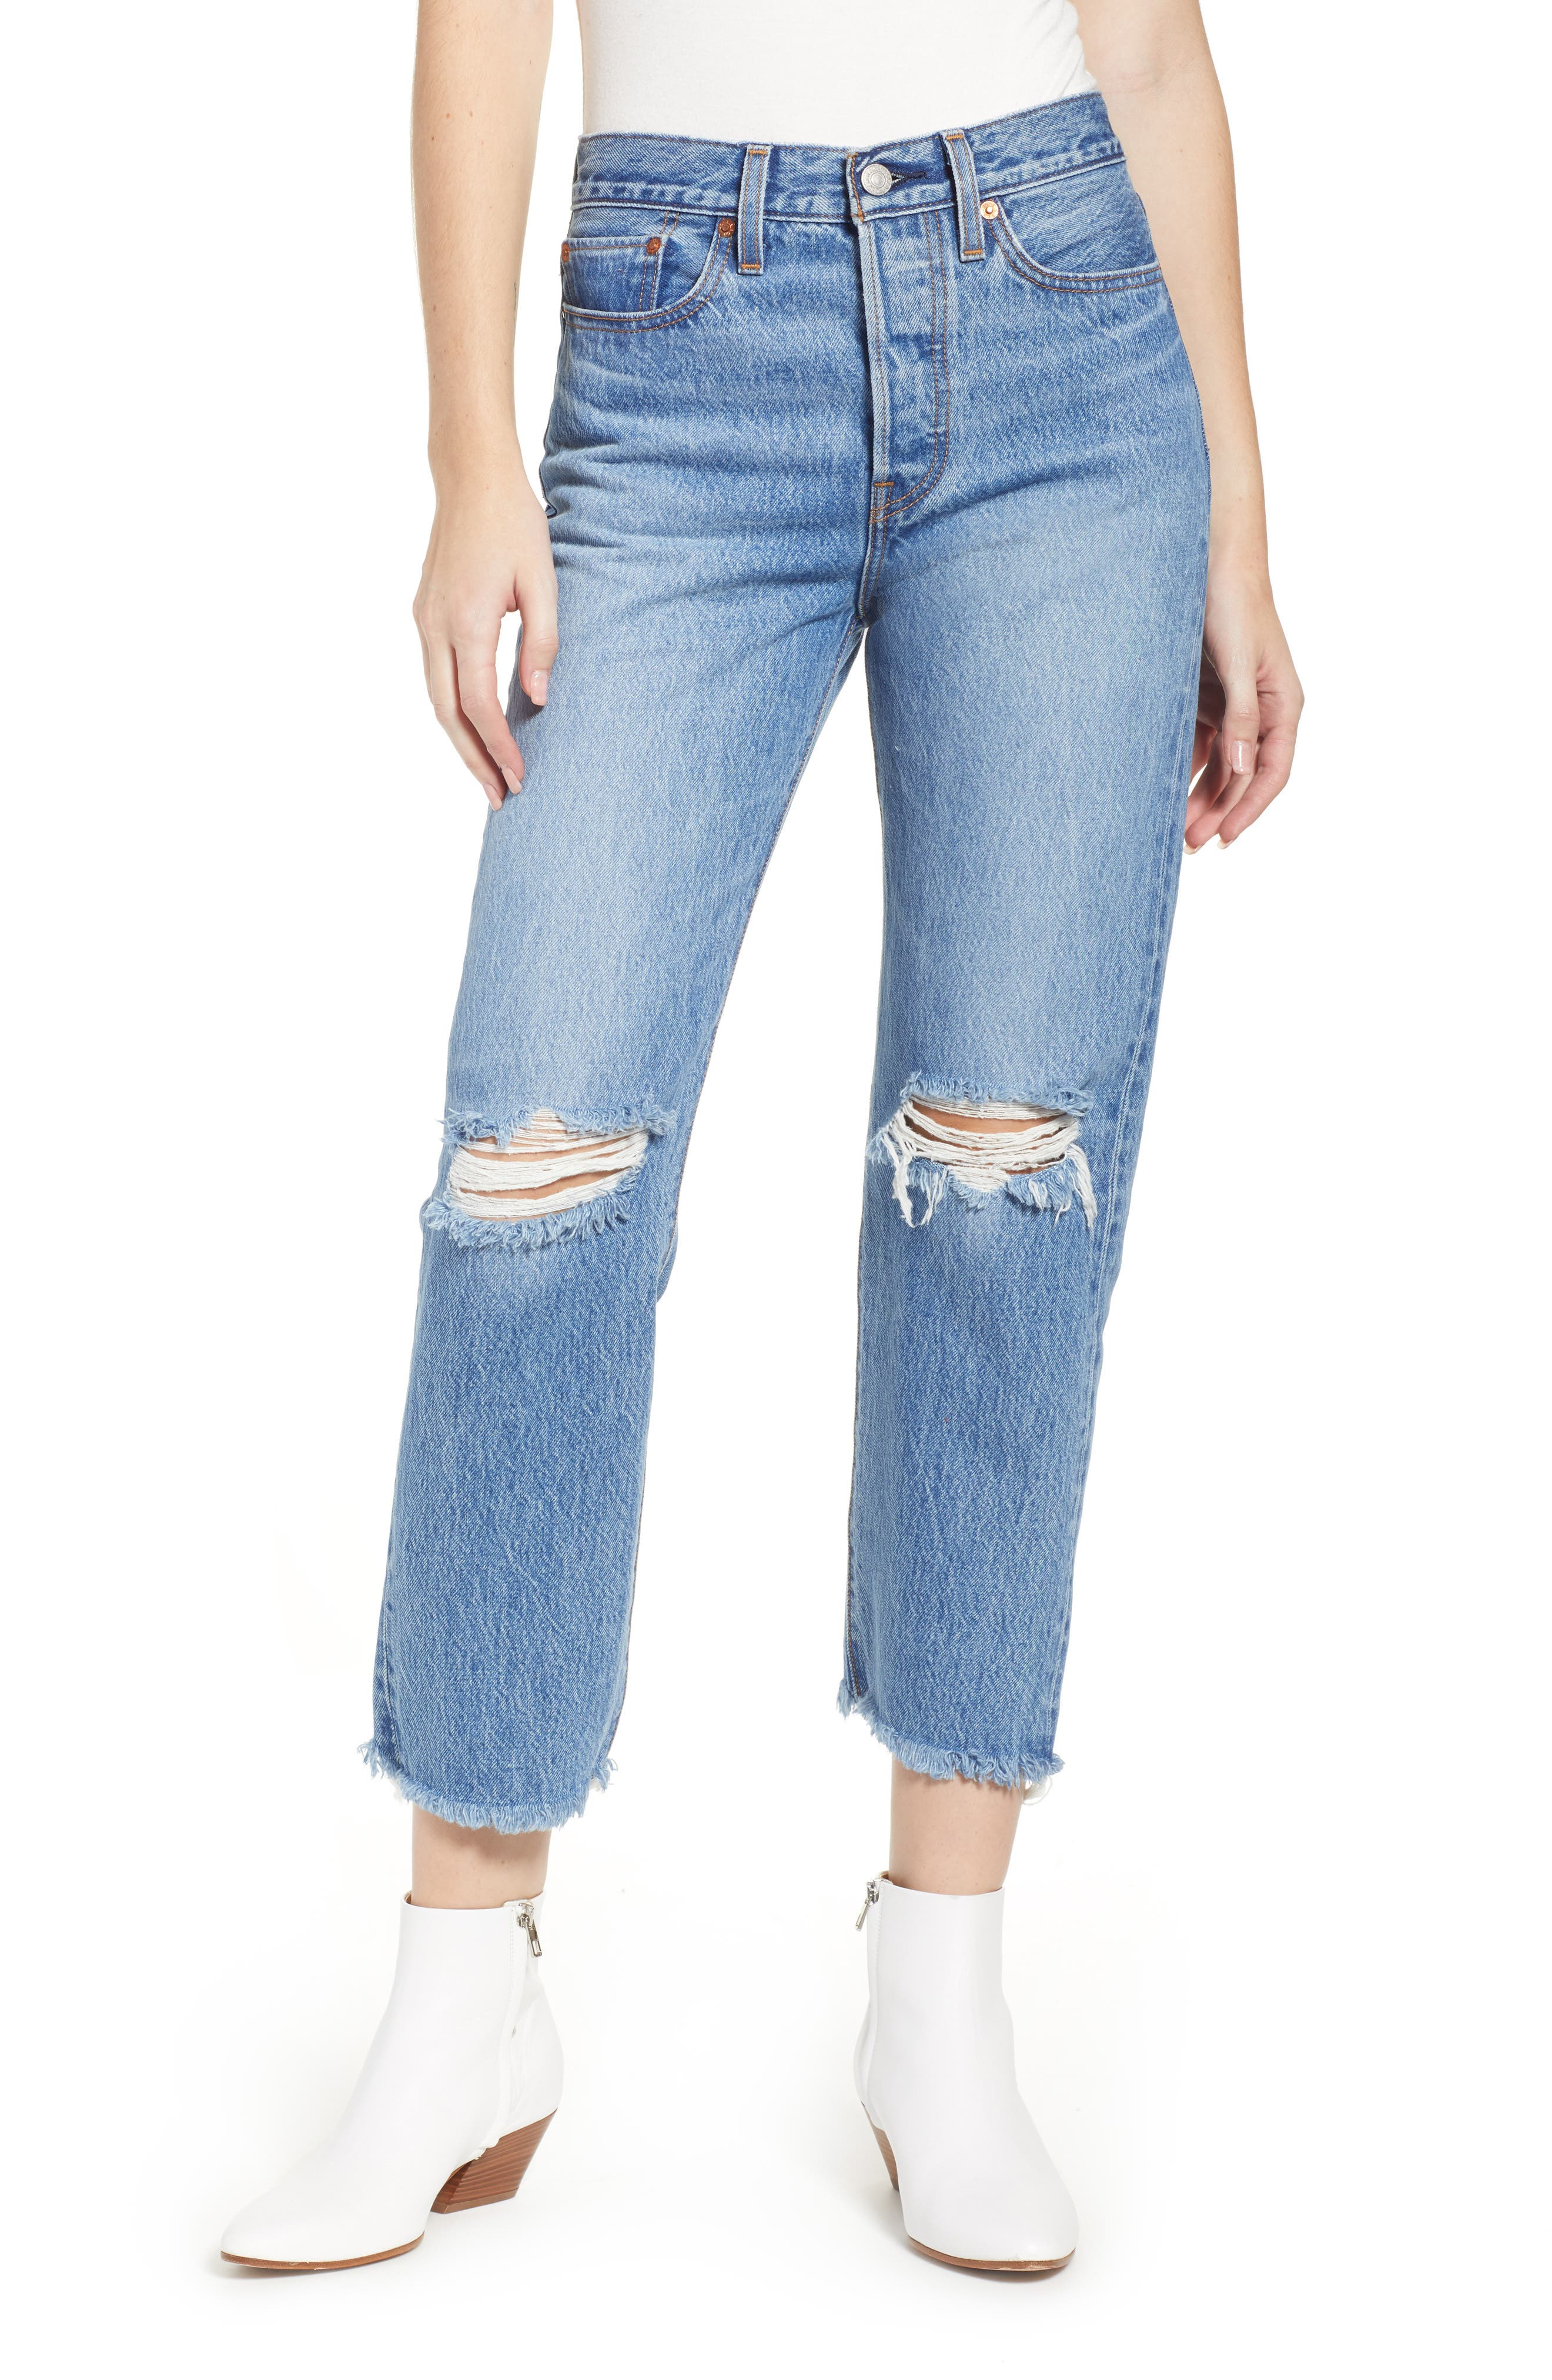 LEVI'S<SUP>®</SUP>, Wedgie High Waist Ripped Crop Straight Leg Jeans, Main thumbnail 1, color, UNCOVERED TRUTH